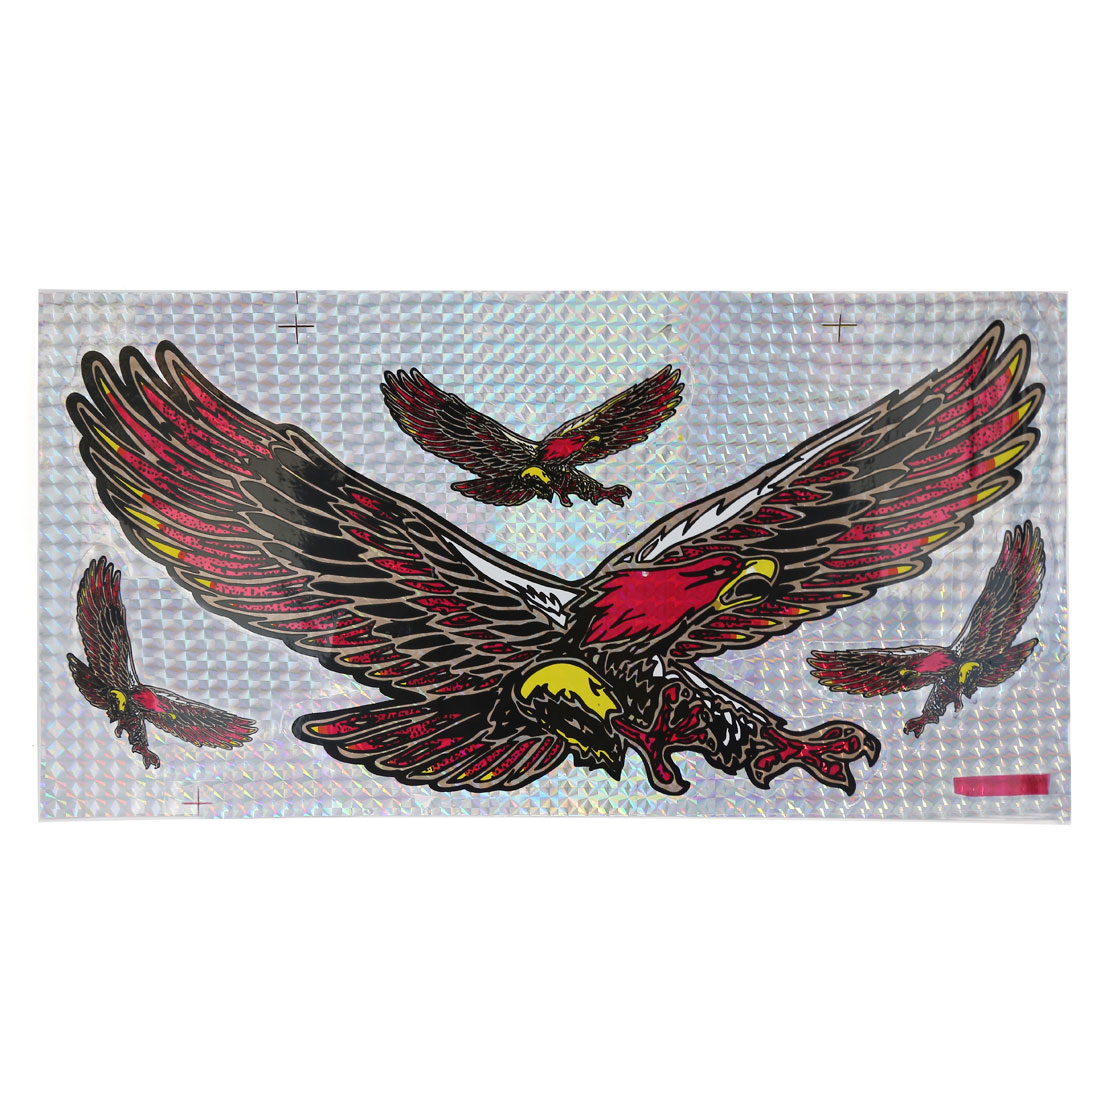 Four Flying Eagle Printing Self Adhesive Car Exterior Decorative Sticker Adorn